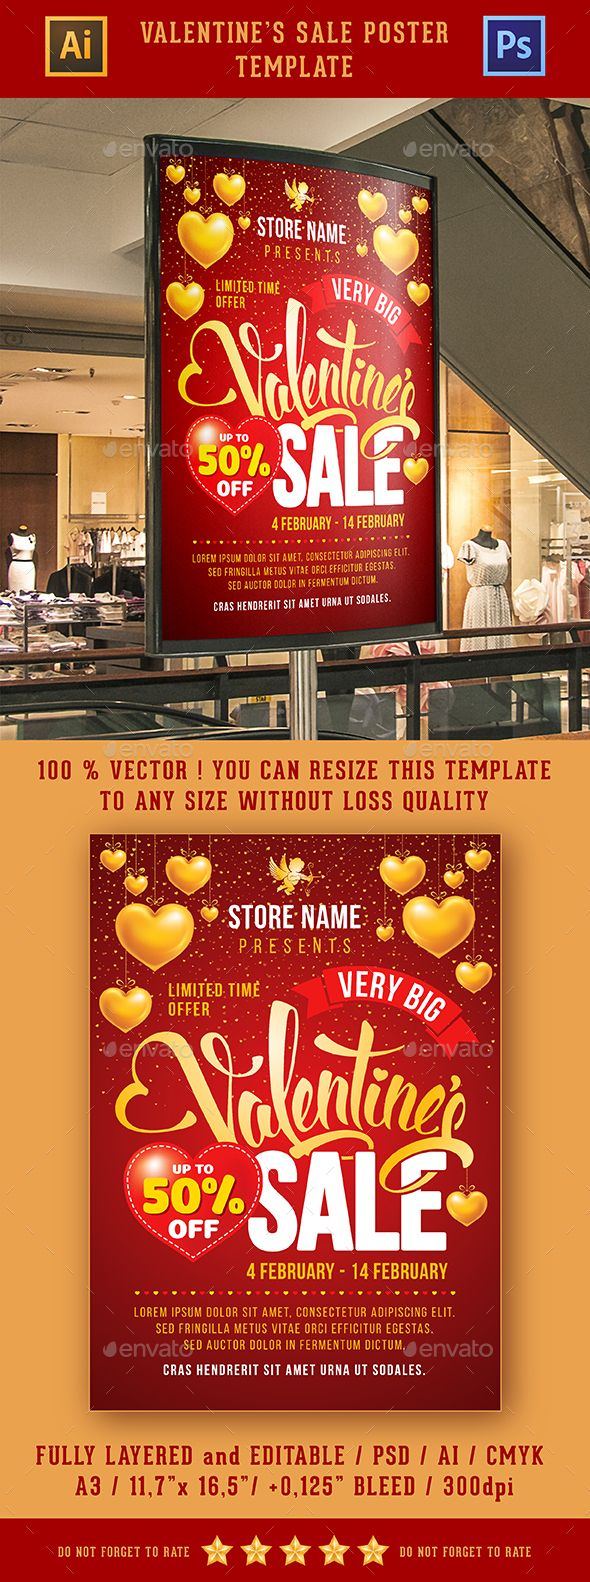 Valentines Sale Poster Template